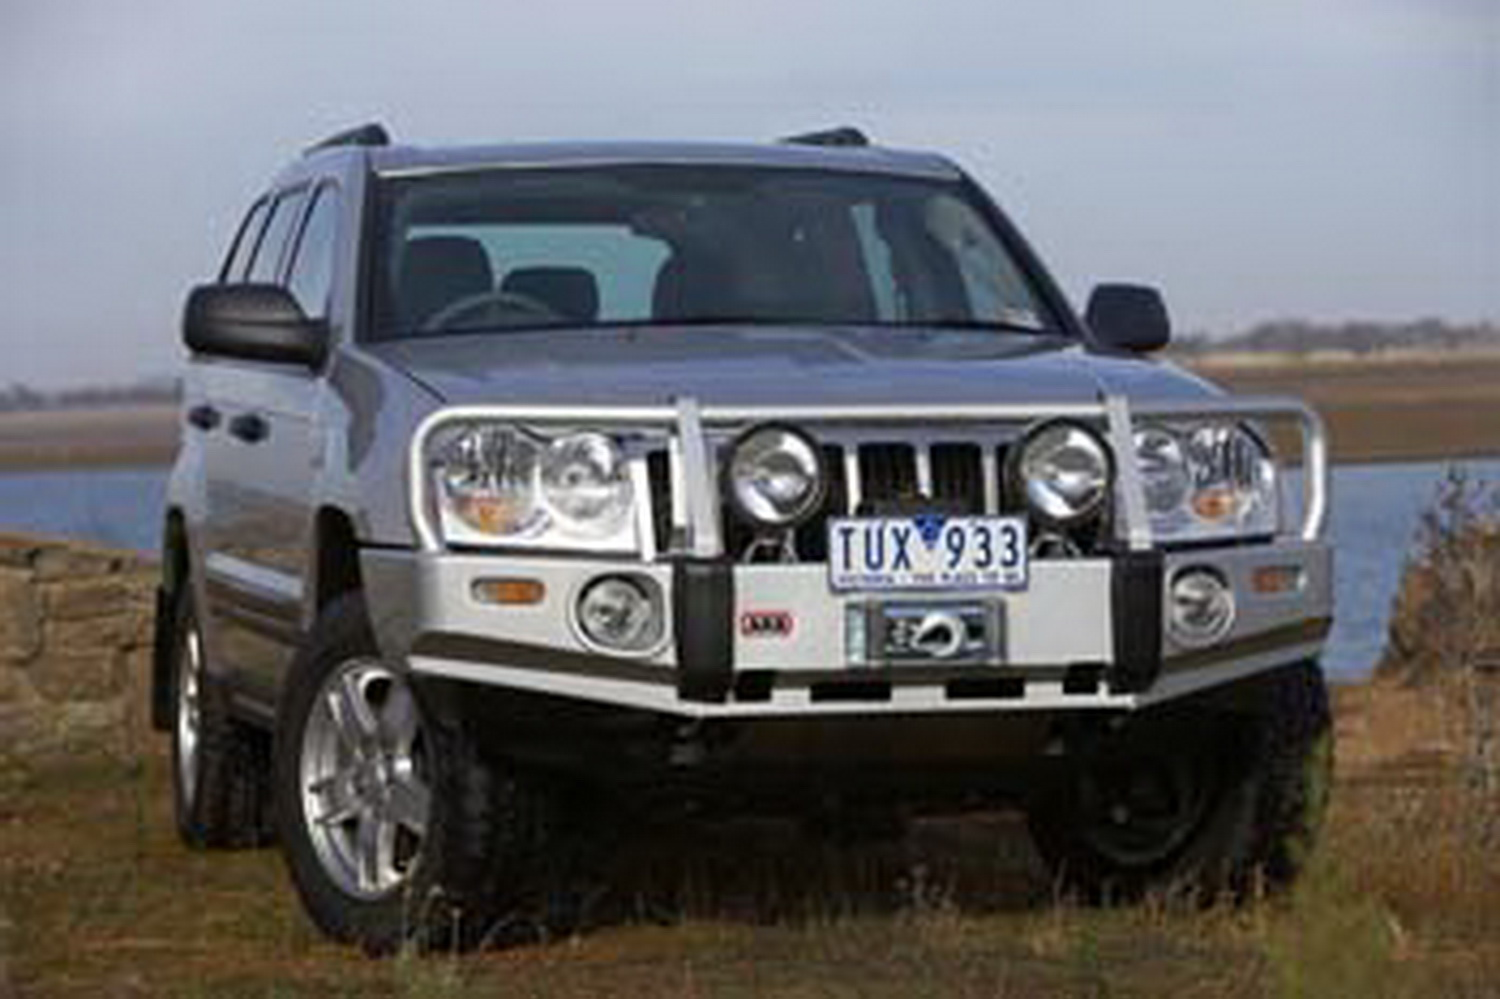 ARB 4x4 Accessories 3450130 Front Deluxe Bull Bar Winch Mount Bumper